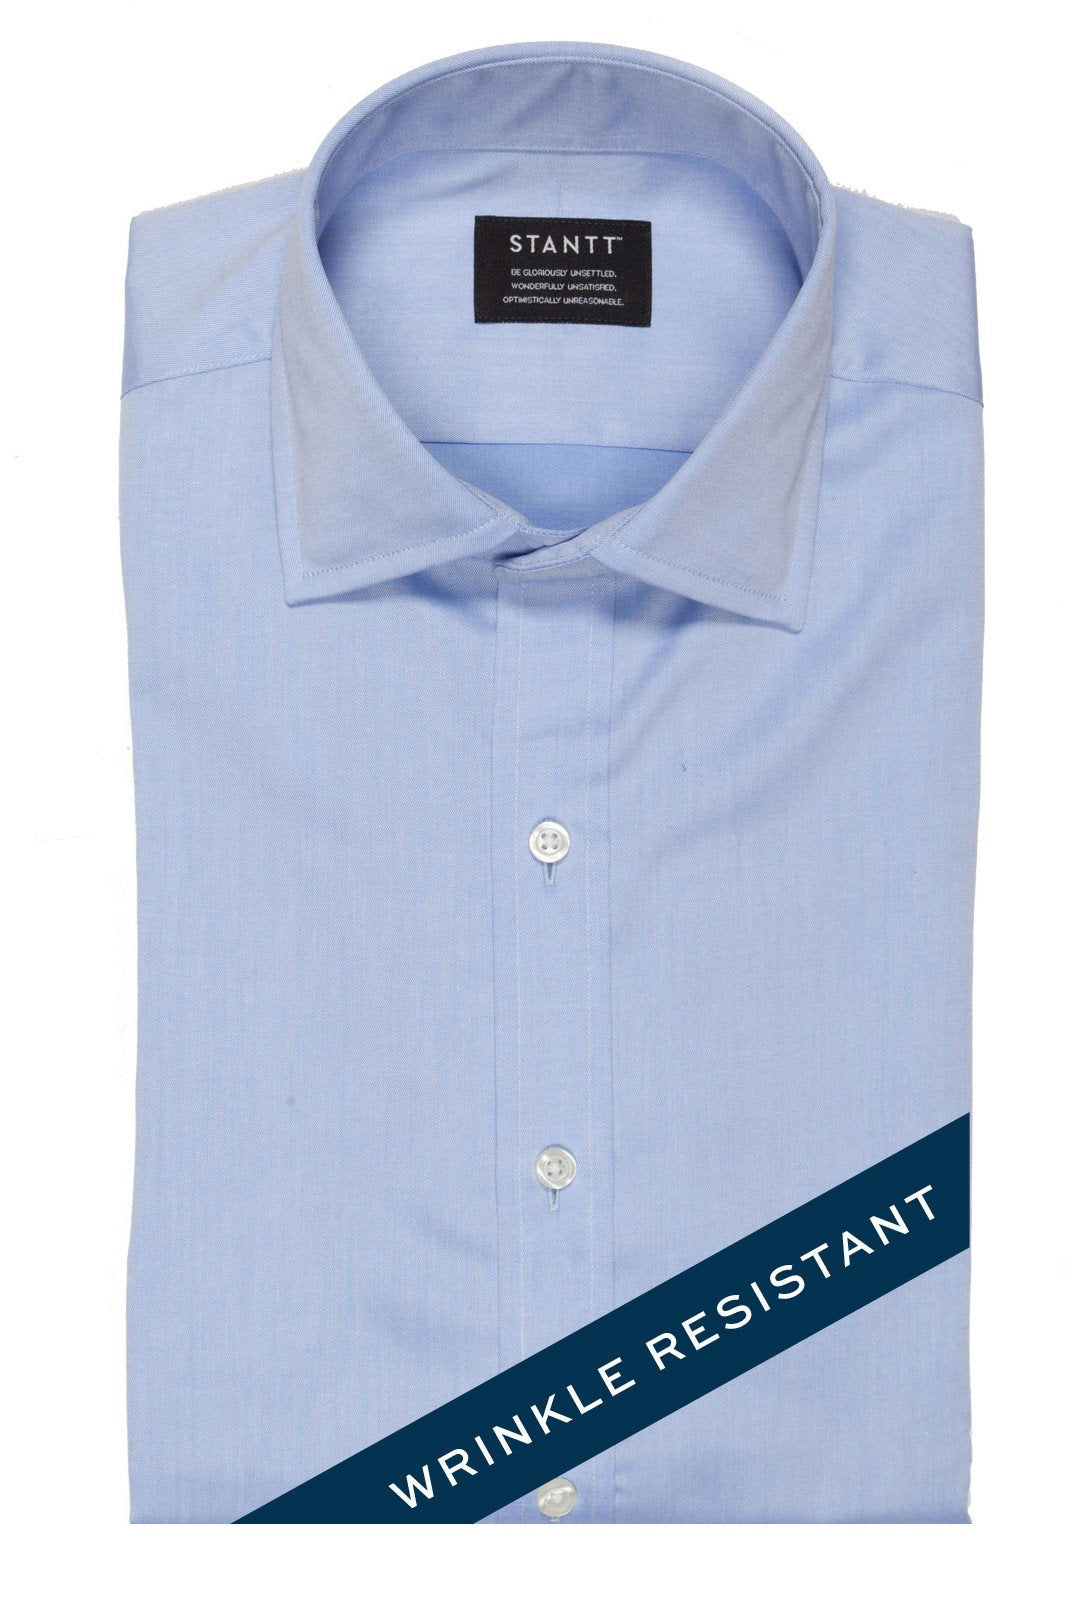 Wrinkle-Resistant Light Blue Twill: Modified-Spread Collar, Barrel Cuff